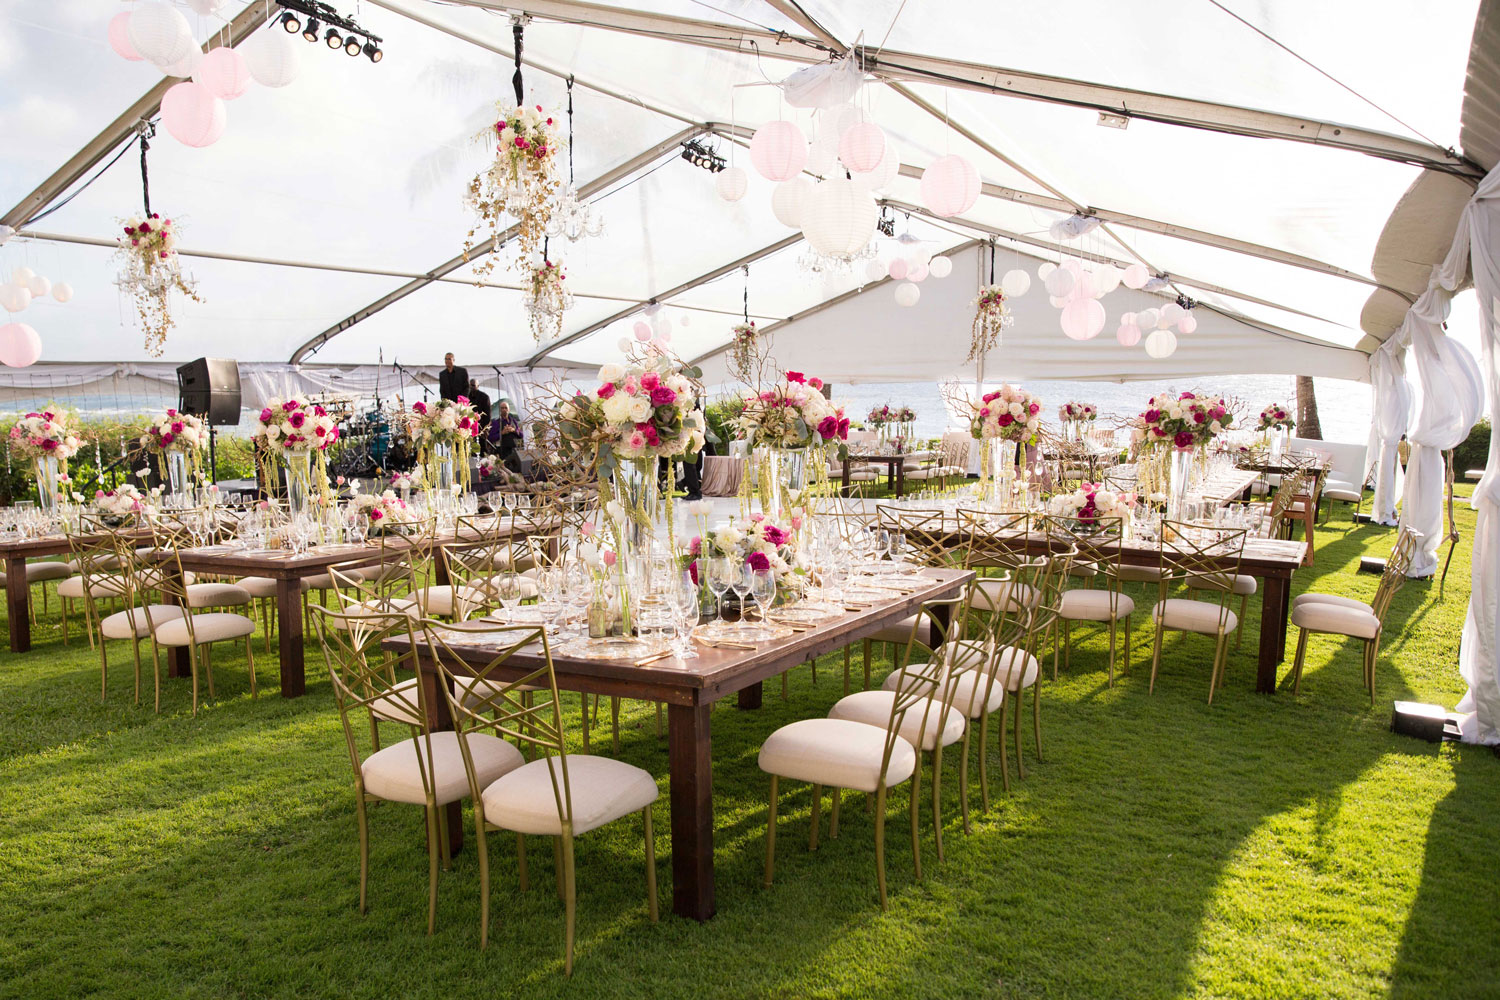 How to Have a Tented Wedding Reception